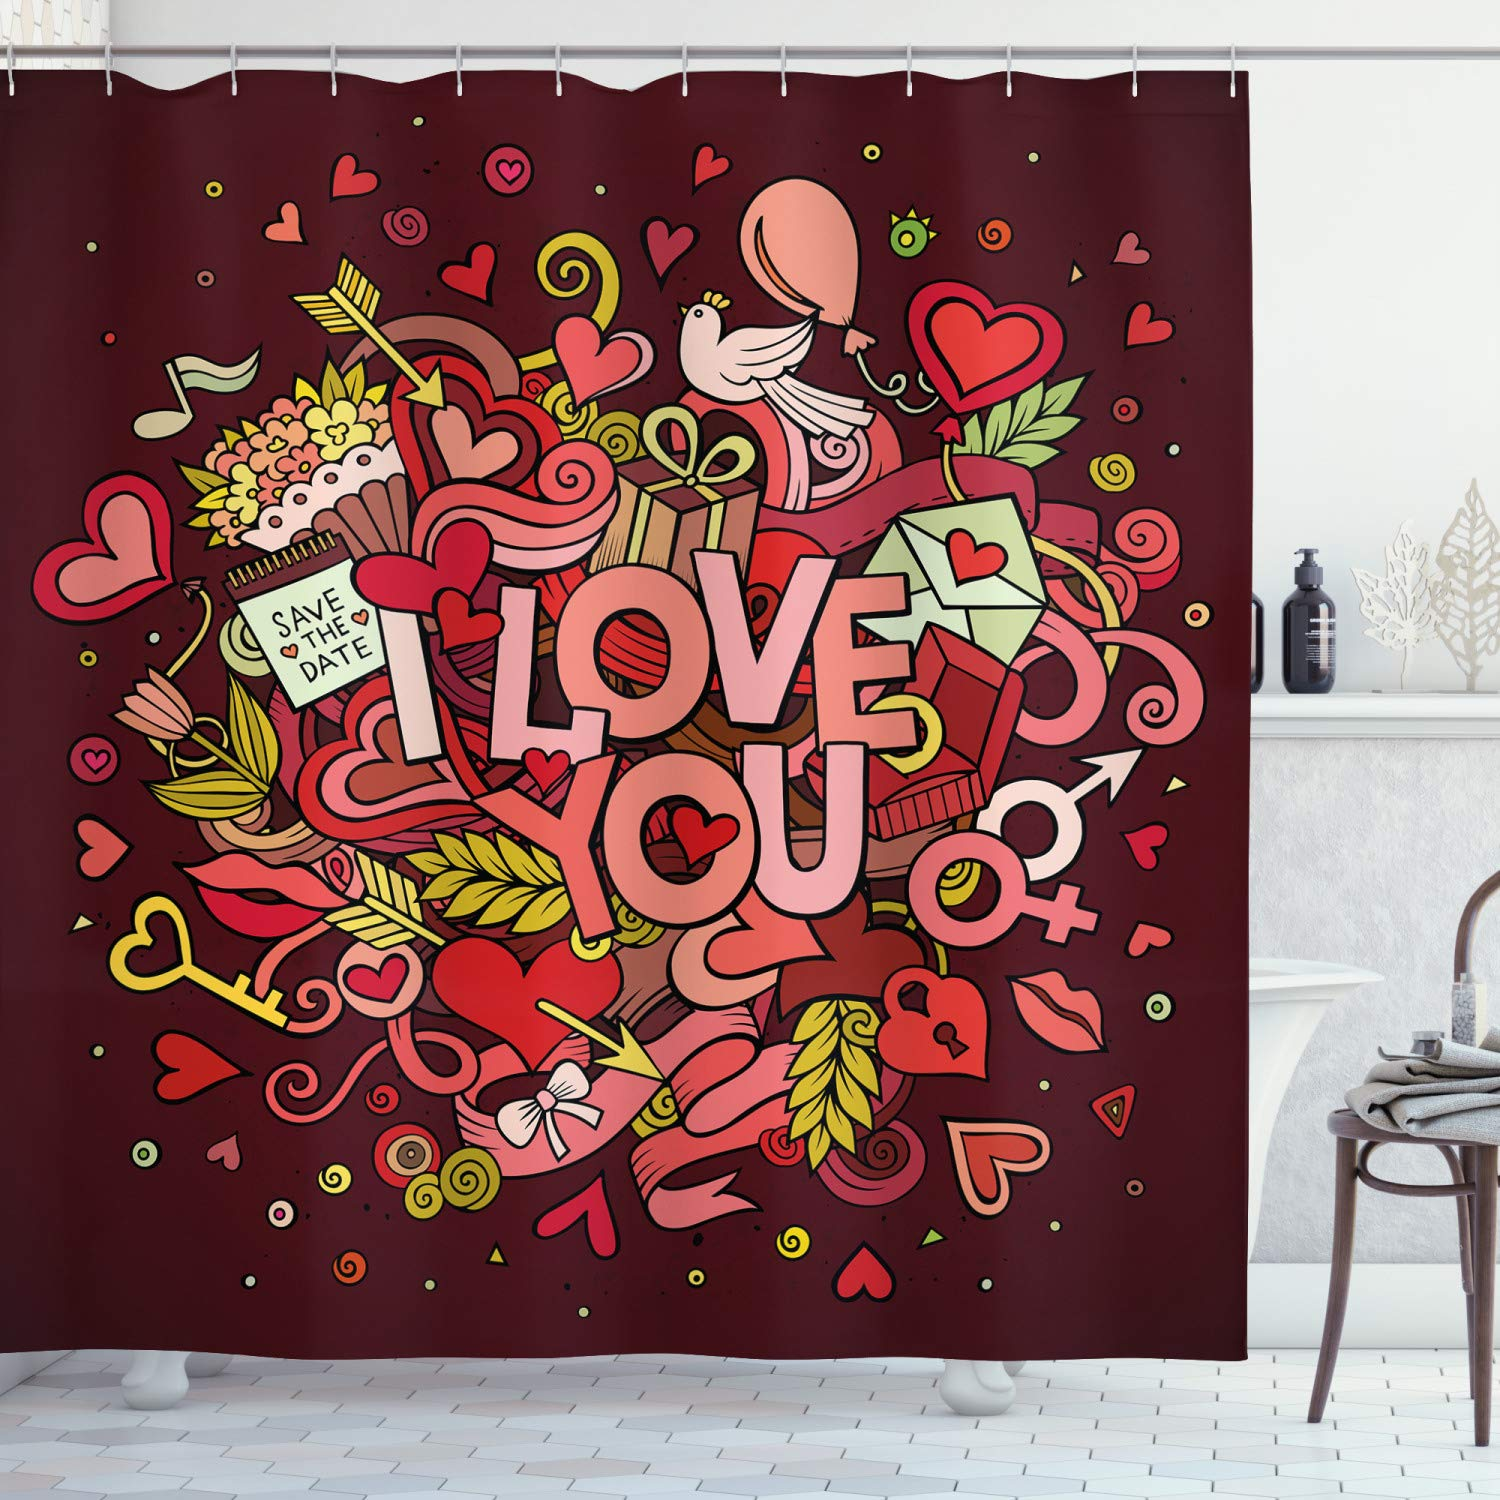 """Ambesonne Romantic Shower Curtain, Retro Funky I Love You Words on Hearts Arrows Baloons Birhday Image, Cloth Fabric Bathroom Decor Set with Hooks, 70"""" Long, Coral Burgundy"""